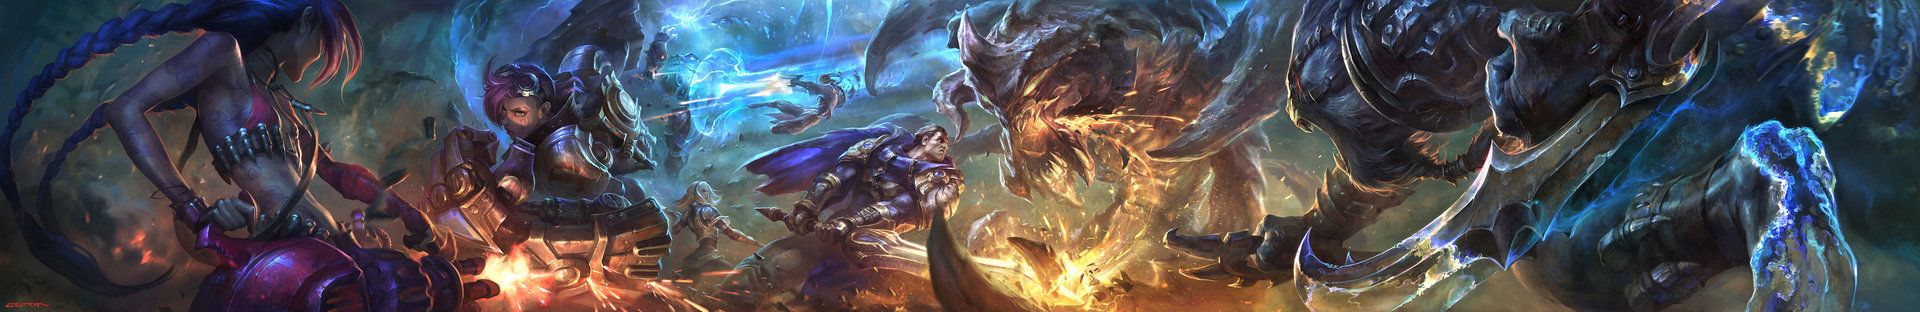 Resultado de imagen de league of legends banner